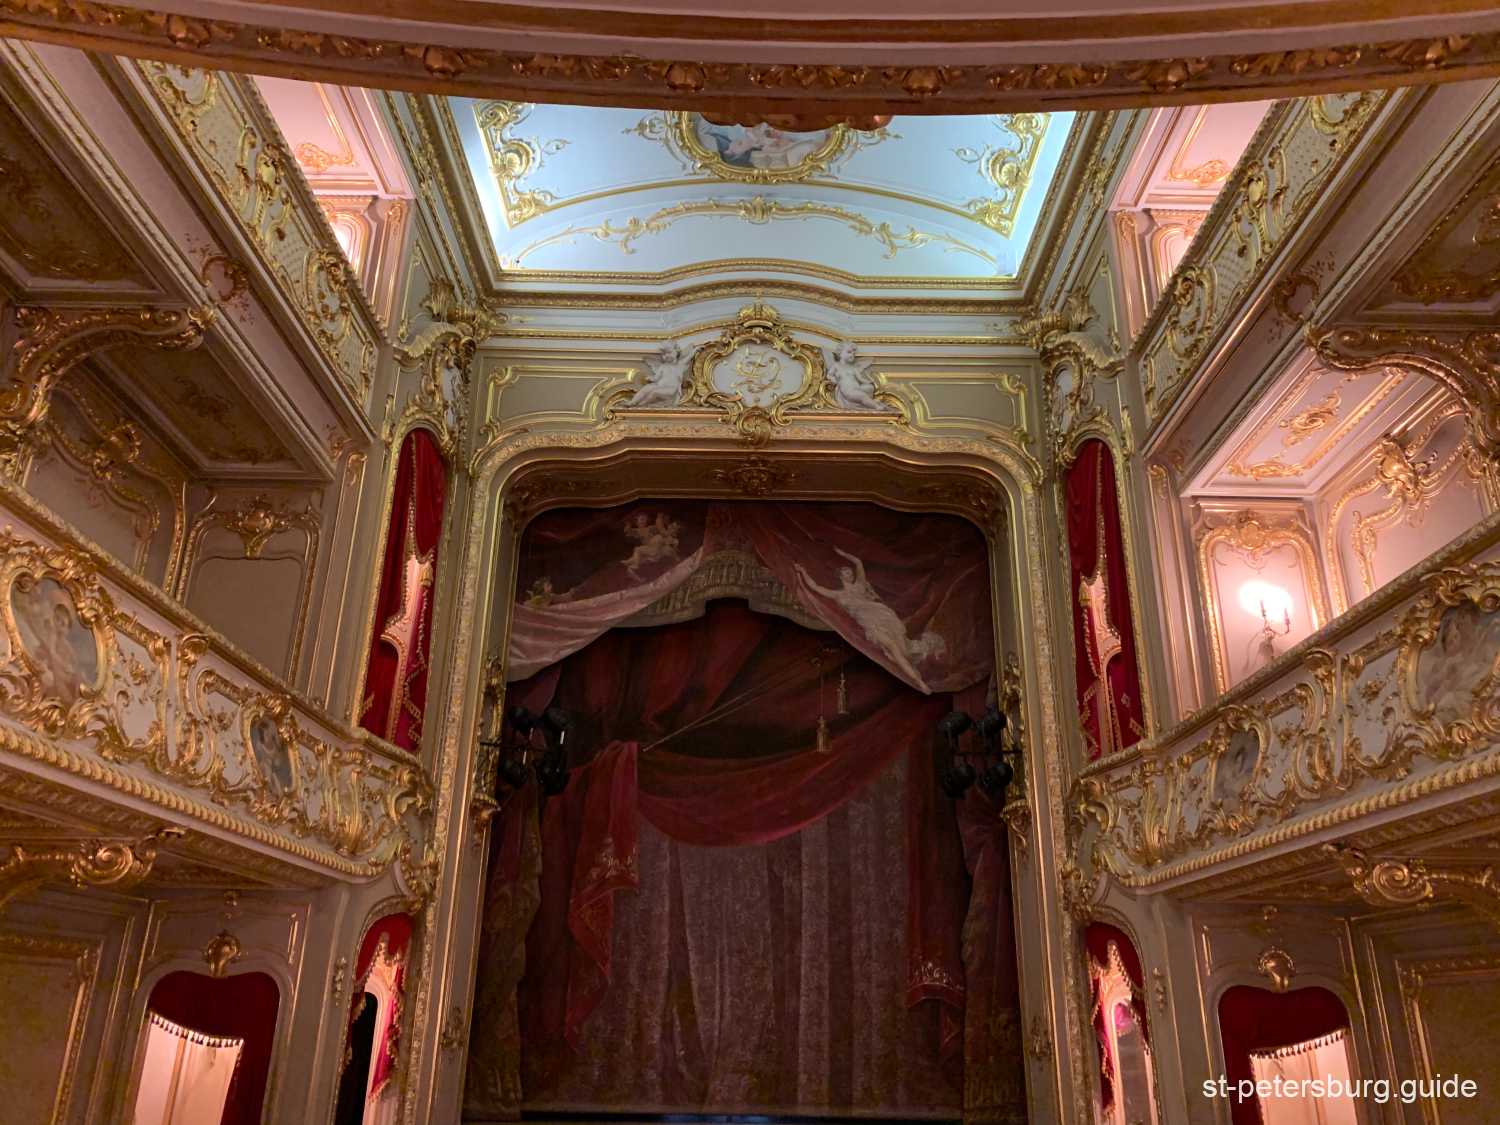 Curtains and interior decorations of the Yusupovs Palace Theatre in Saint Petersburg